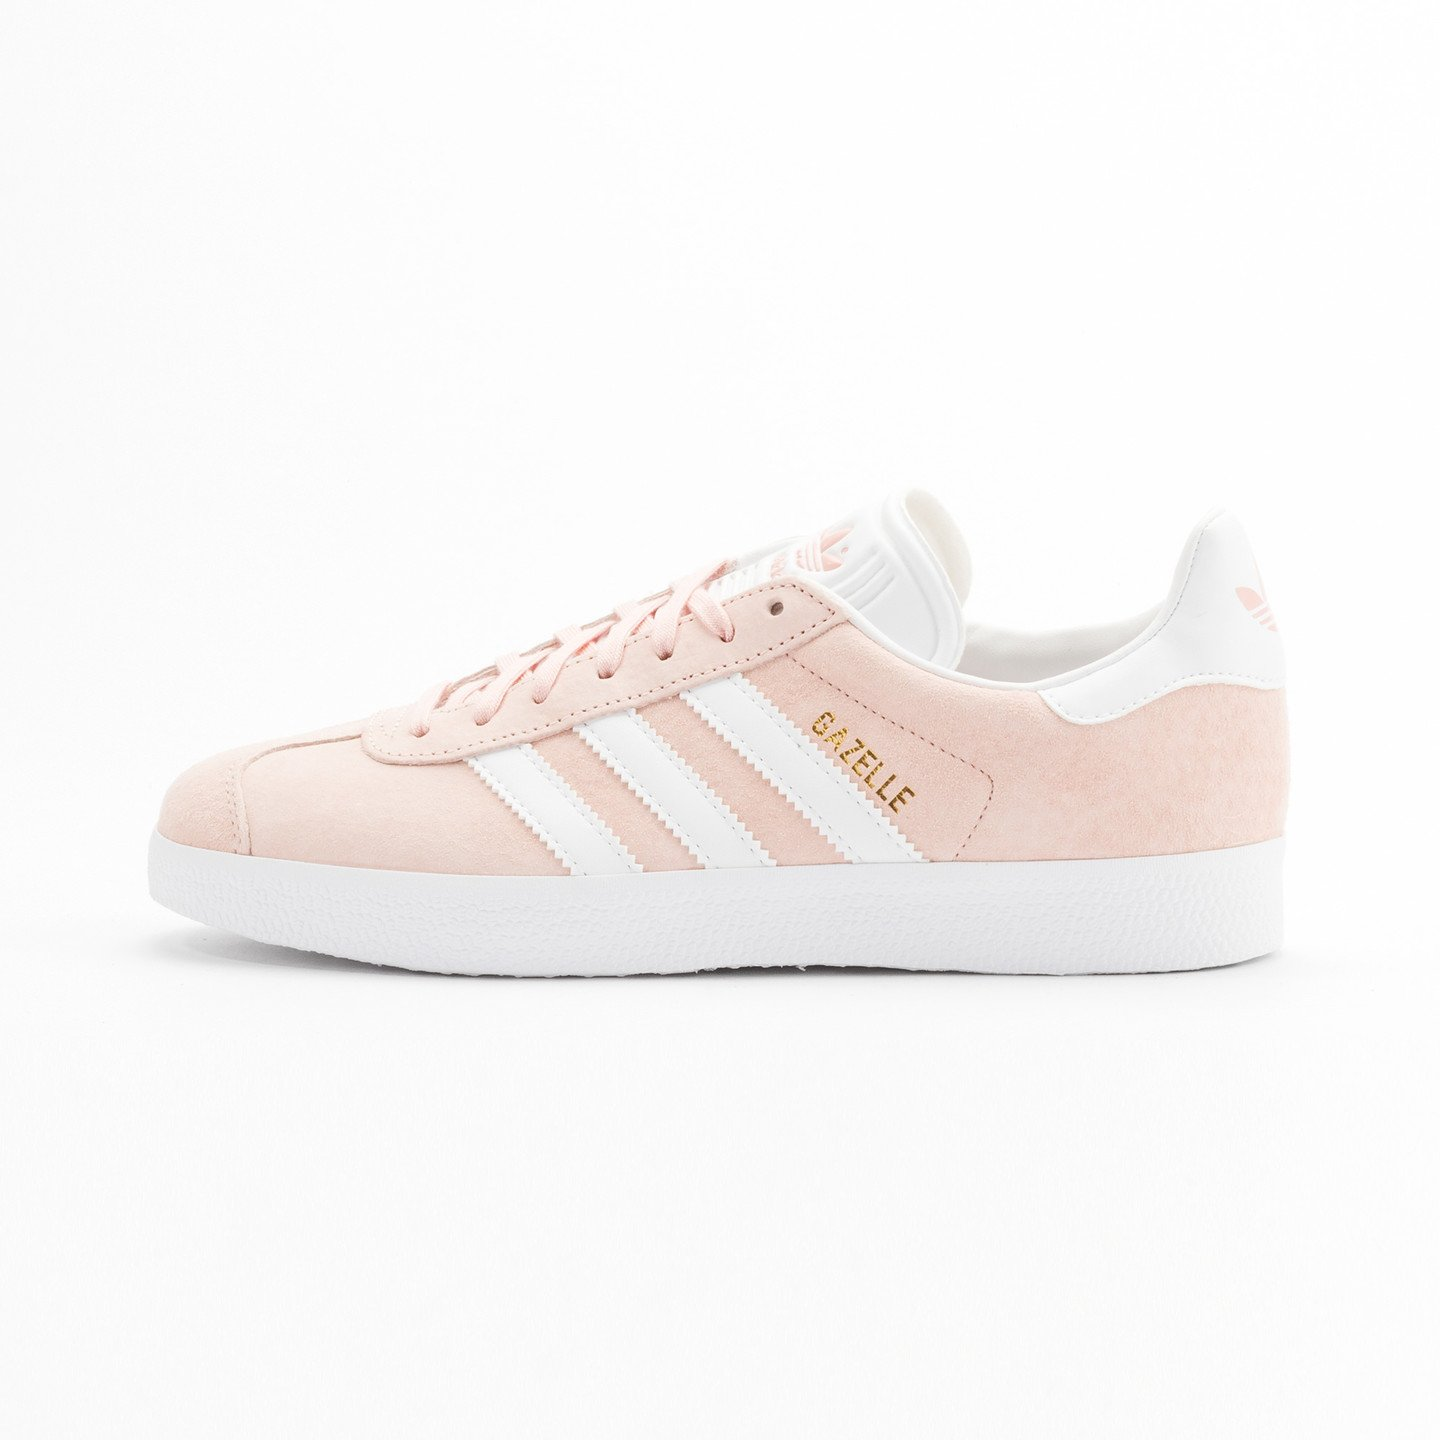 Adidas Gazelle  Vapor Pink / White / Gold Metallic BB5472-39.33